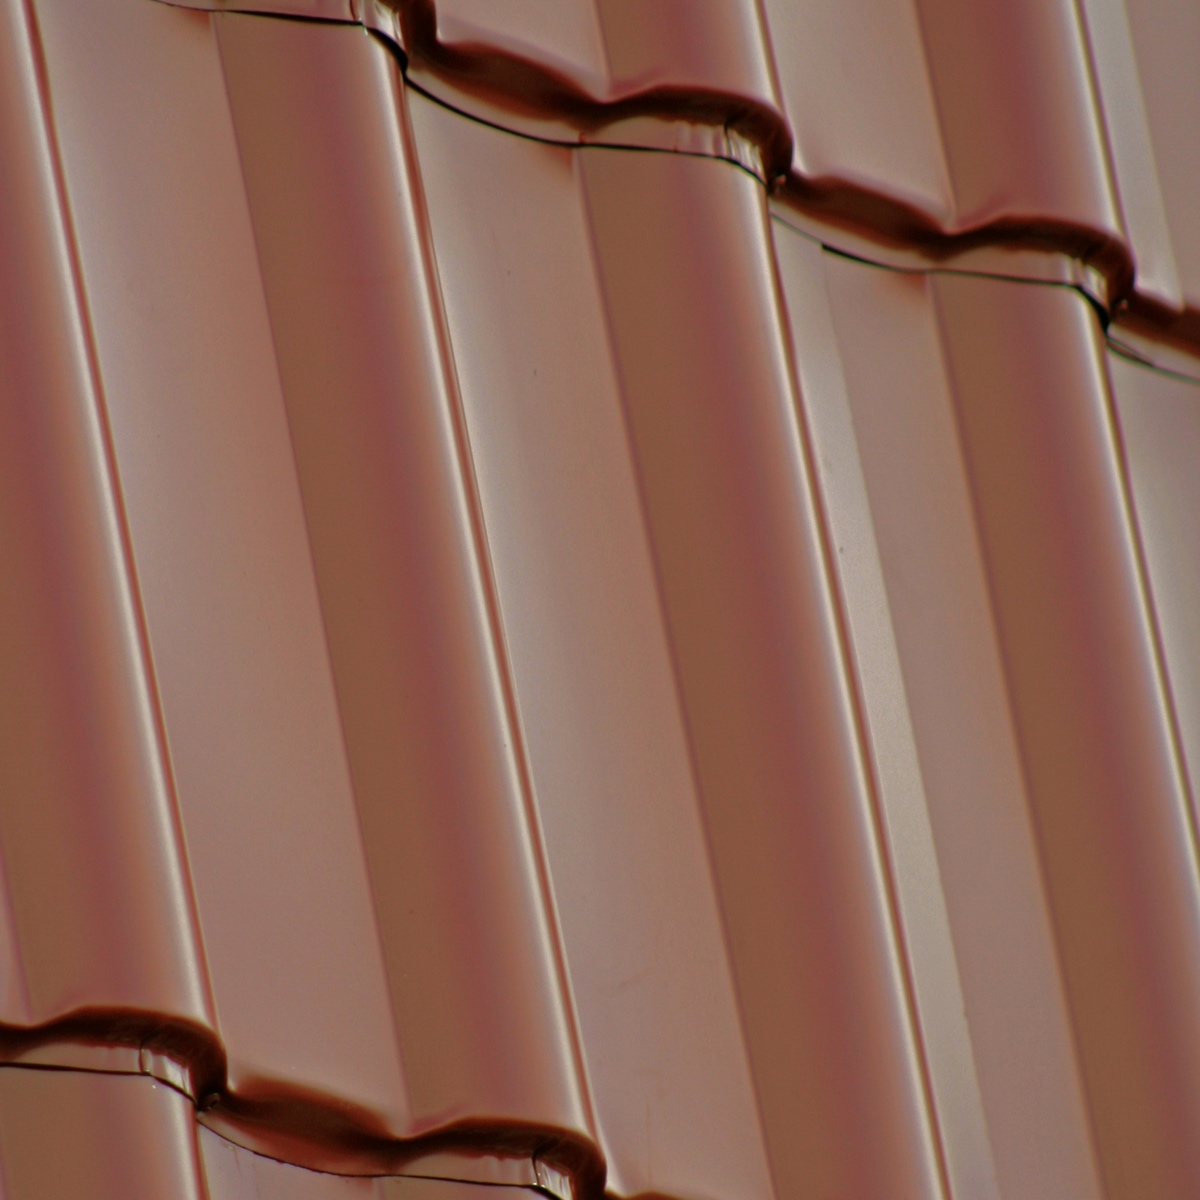 Rare-Manufacturing-European-Tile-Roof-featured-product